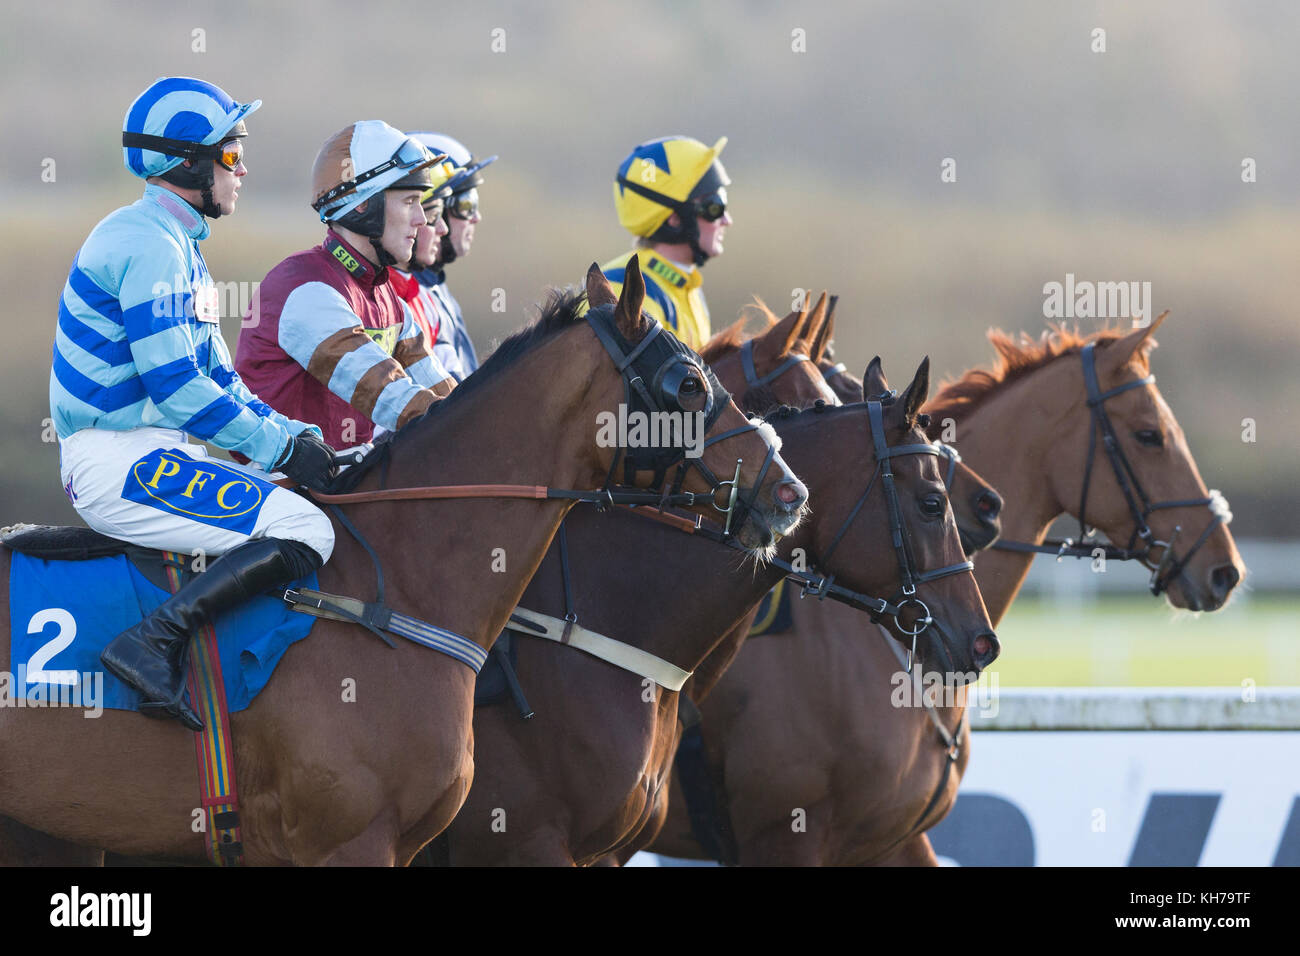 Jockeys and horses prepare to start a race at Ffos Las, Trimsaran, Carmarthenshire, Wales wearing bright, colourful - Stock Image